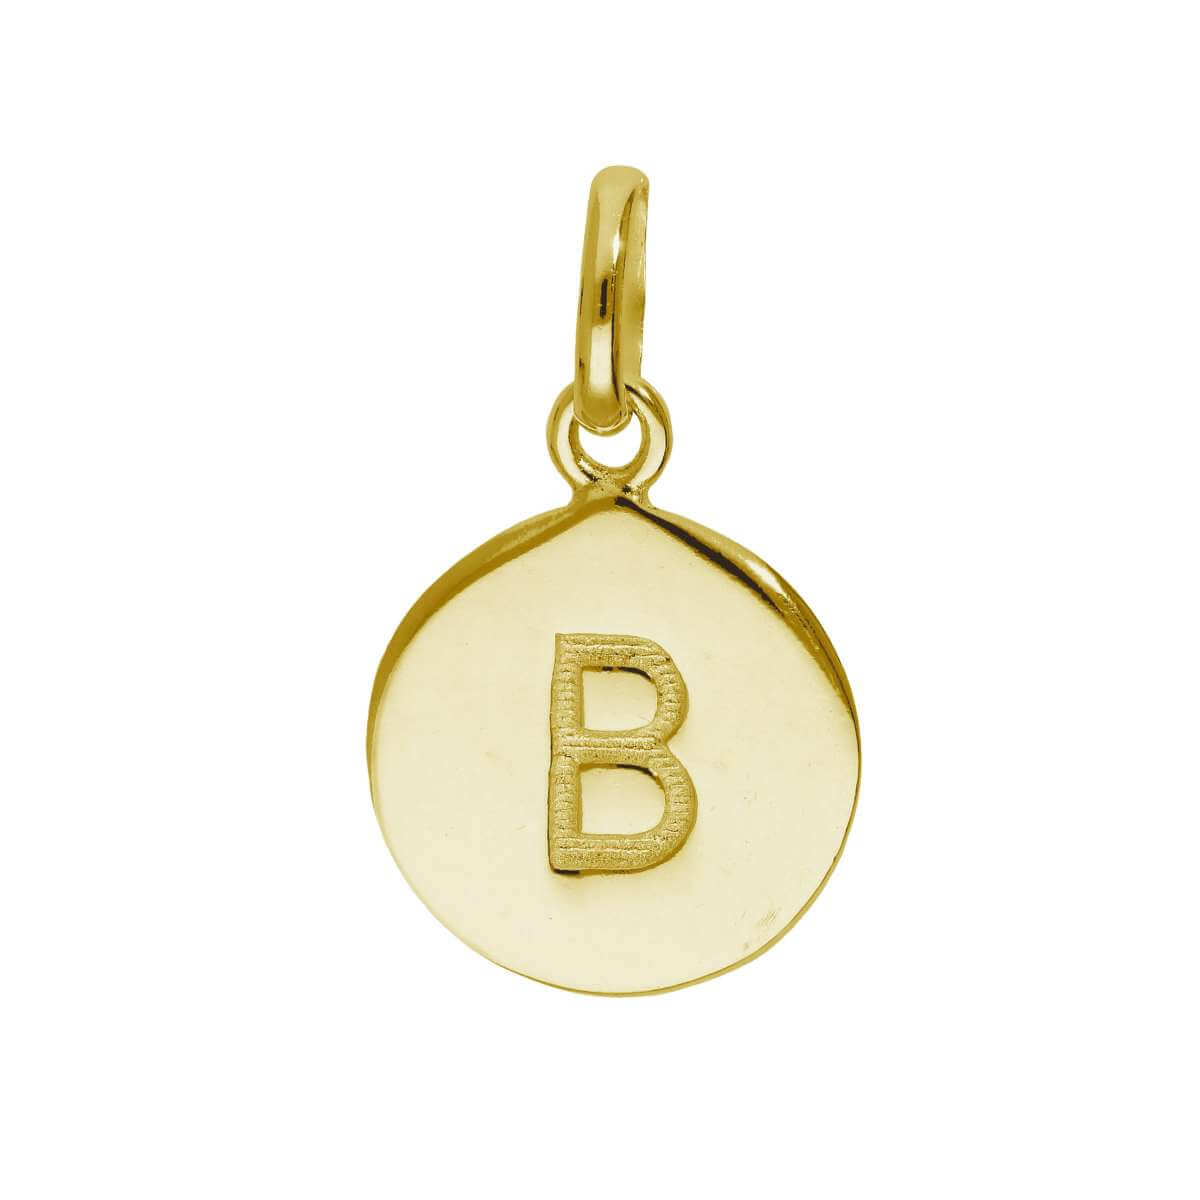 Gold Plated Sterling Silver Engravable Letter B Charm